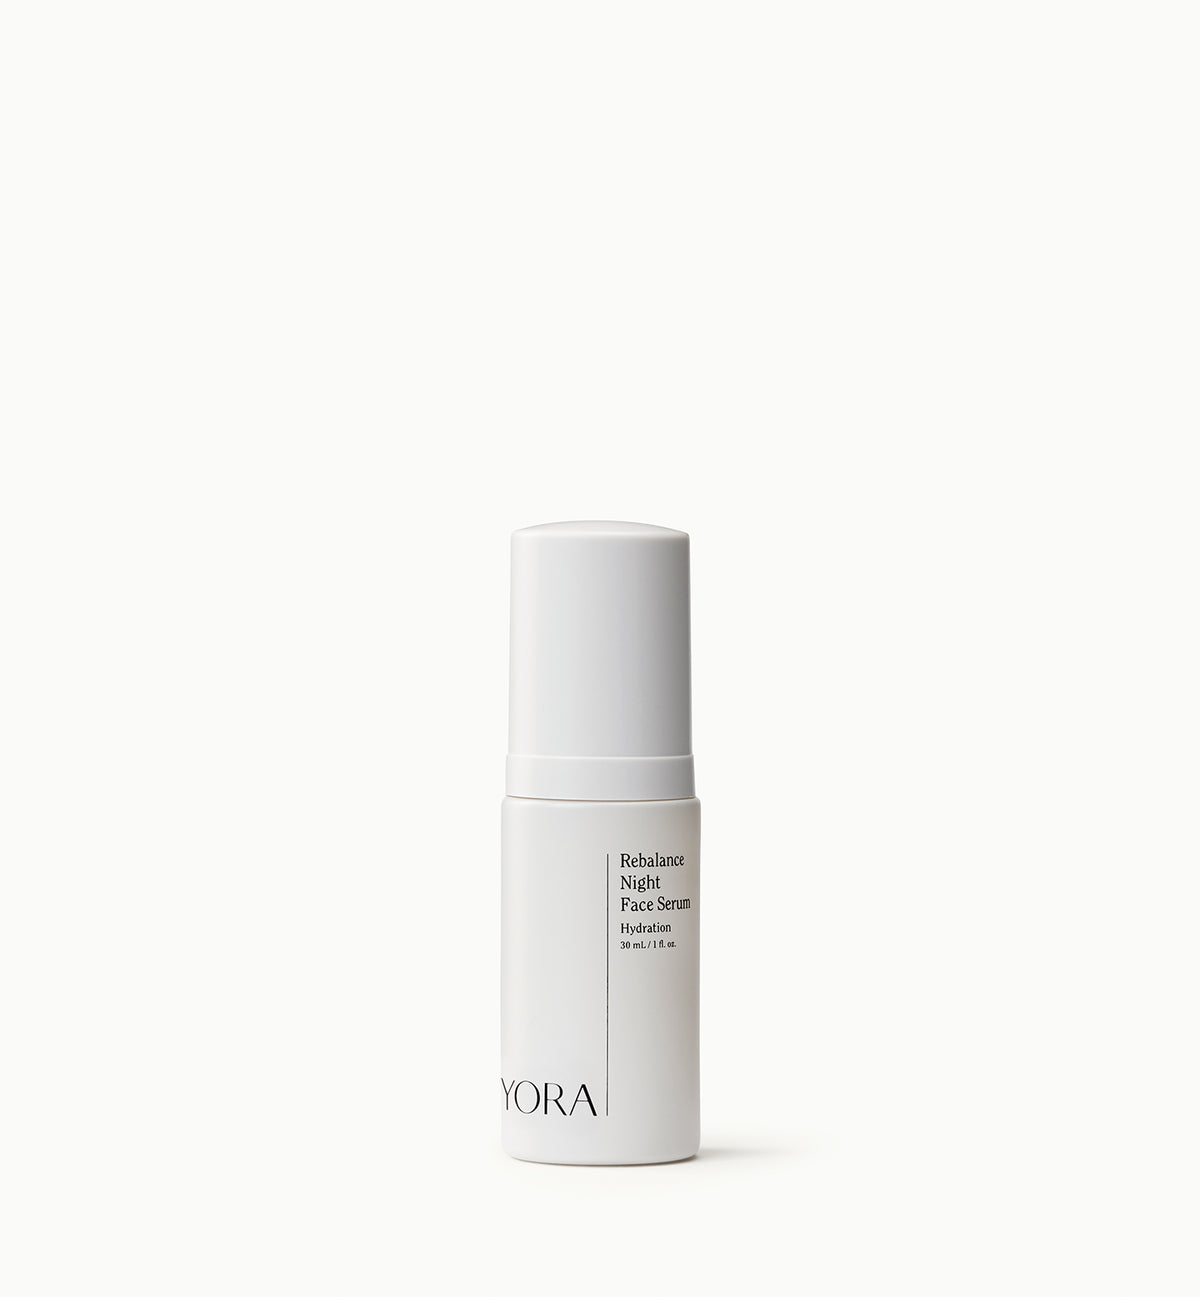 Rebalance Night Face Serum